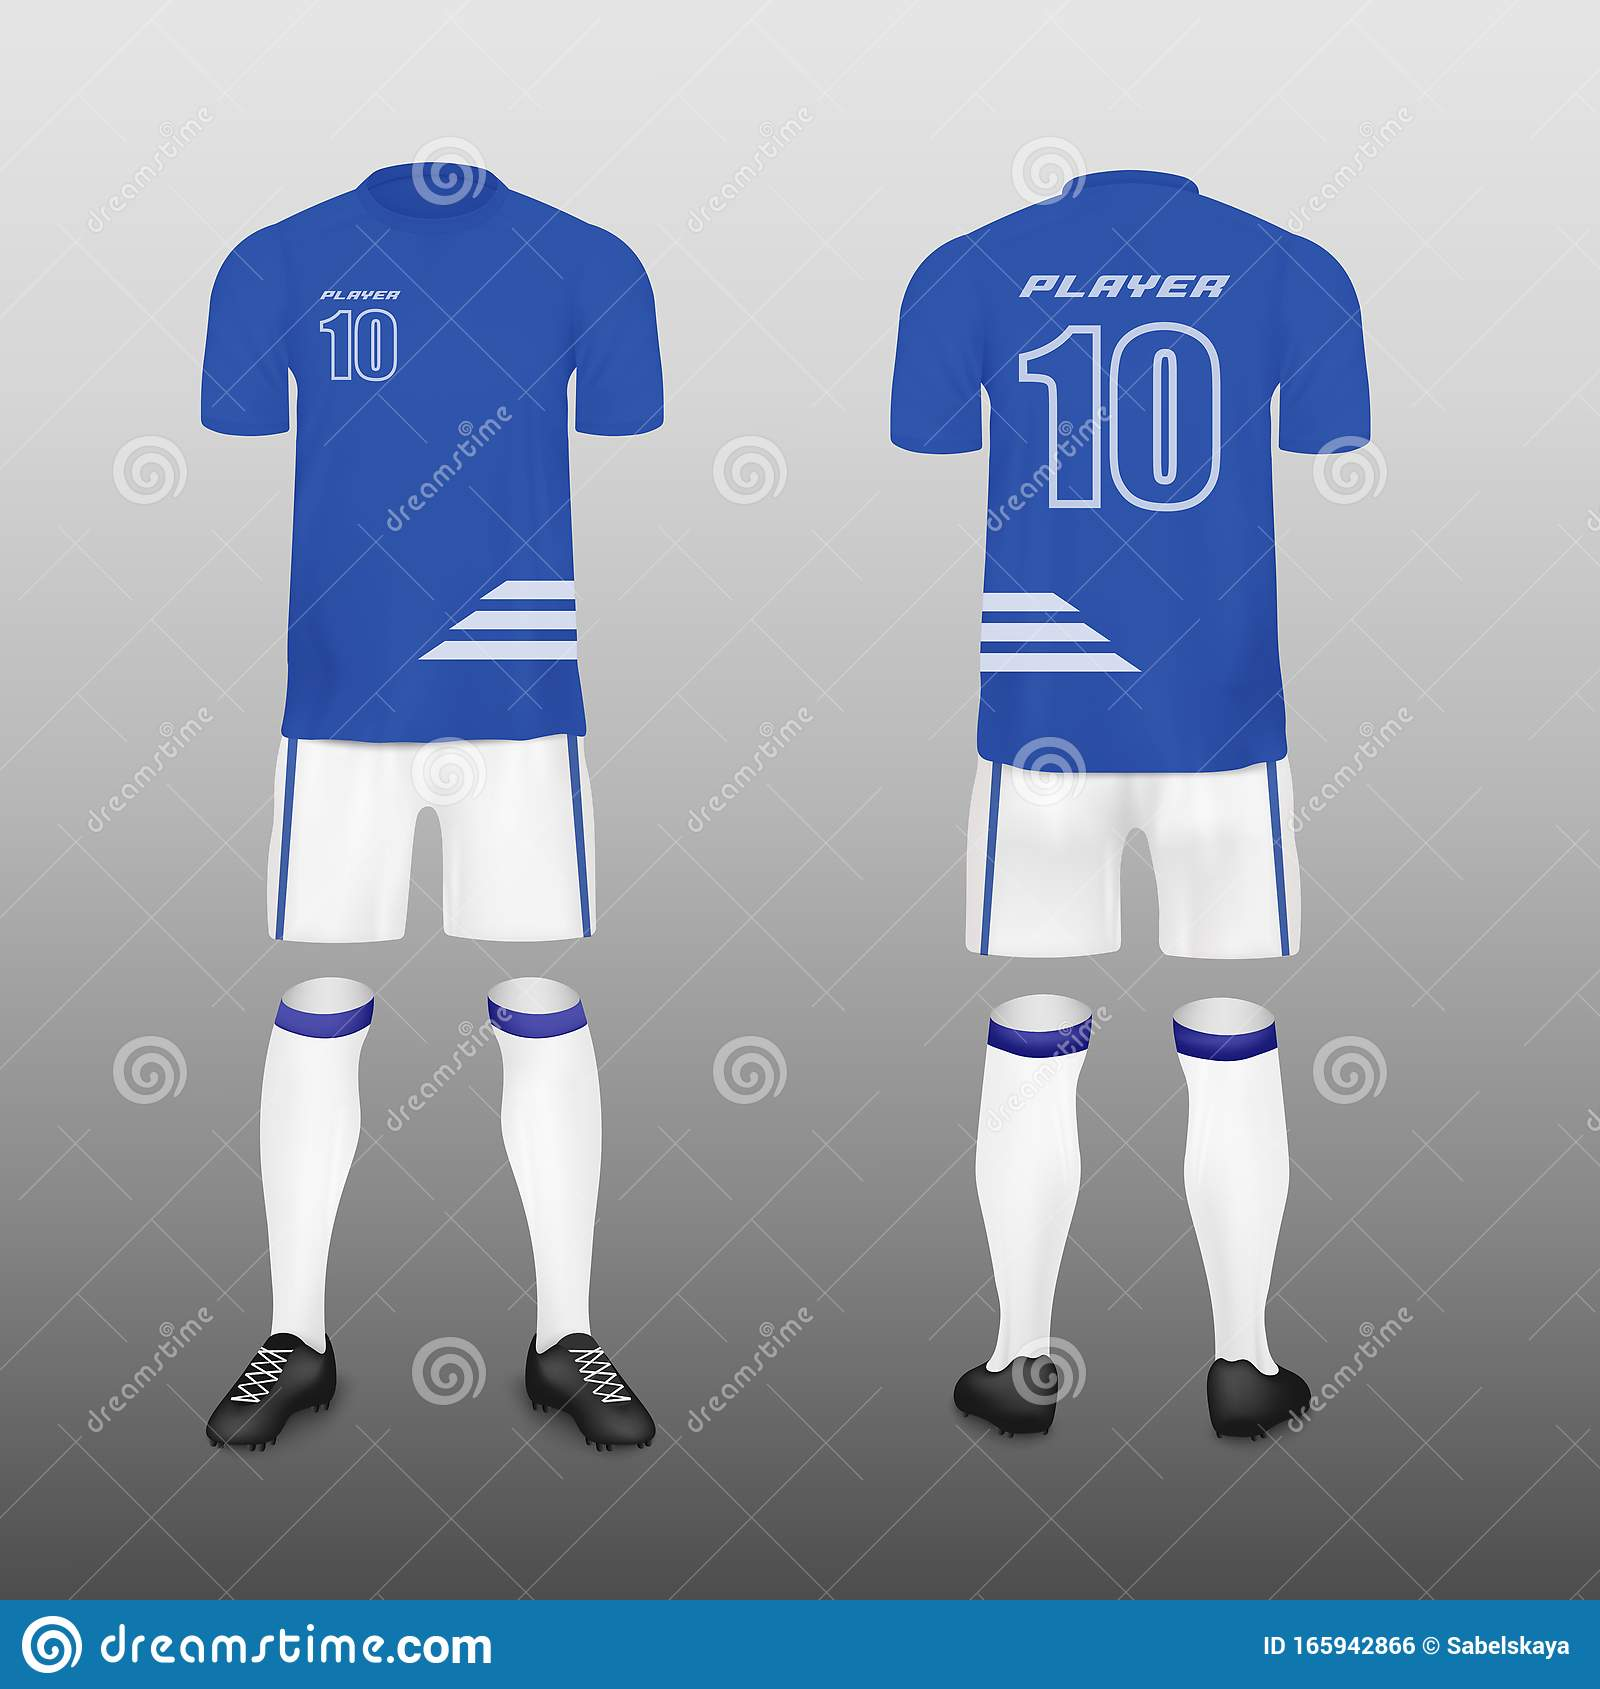 football jersey and pants